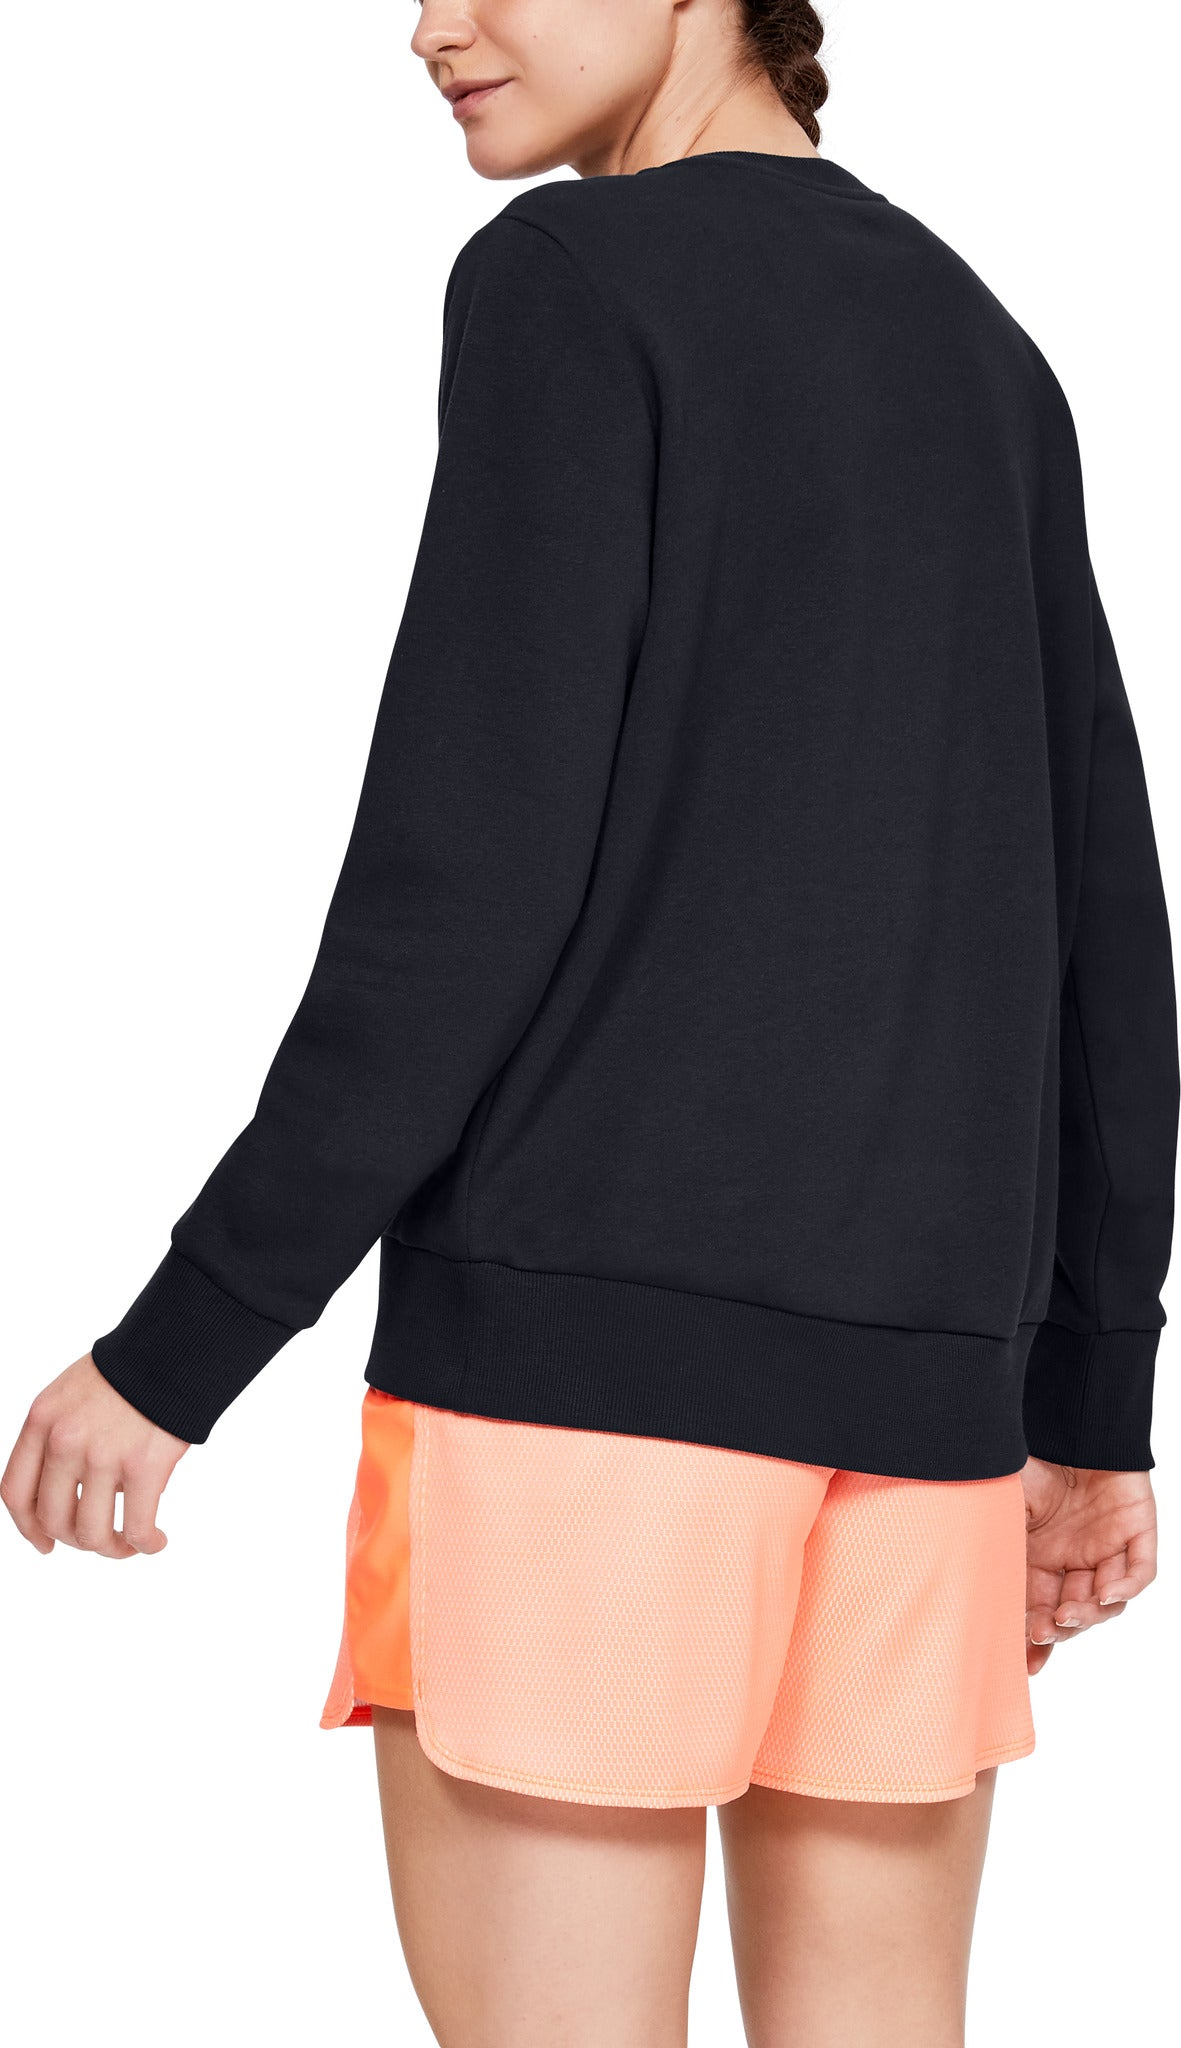 Under Armour Pull 12.1 Rival Fleece Sportstyle Graphic Femme